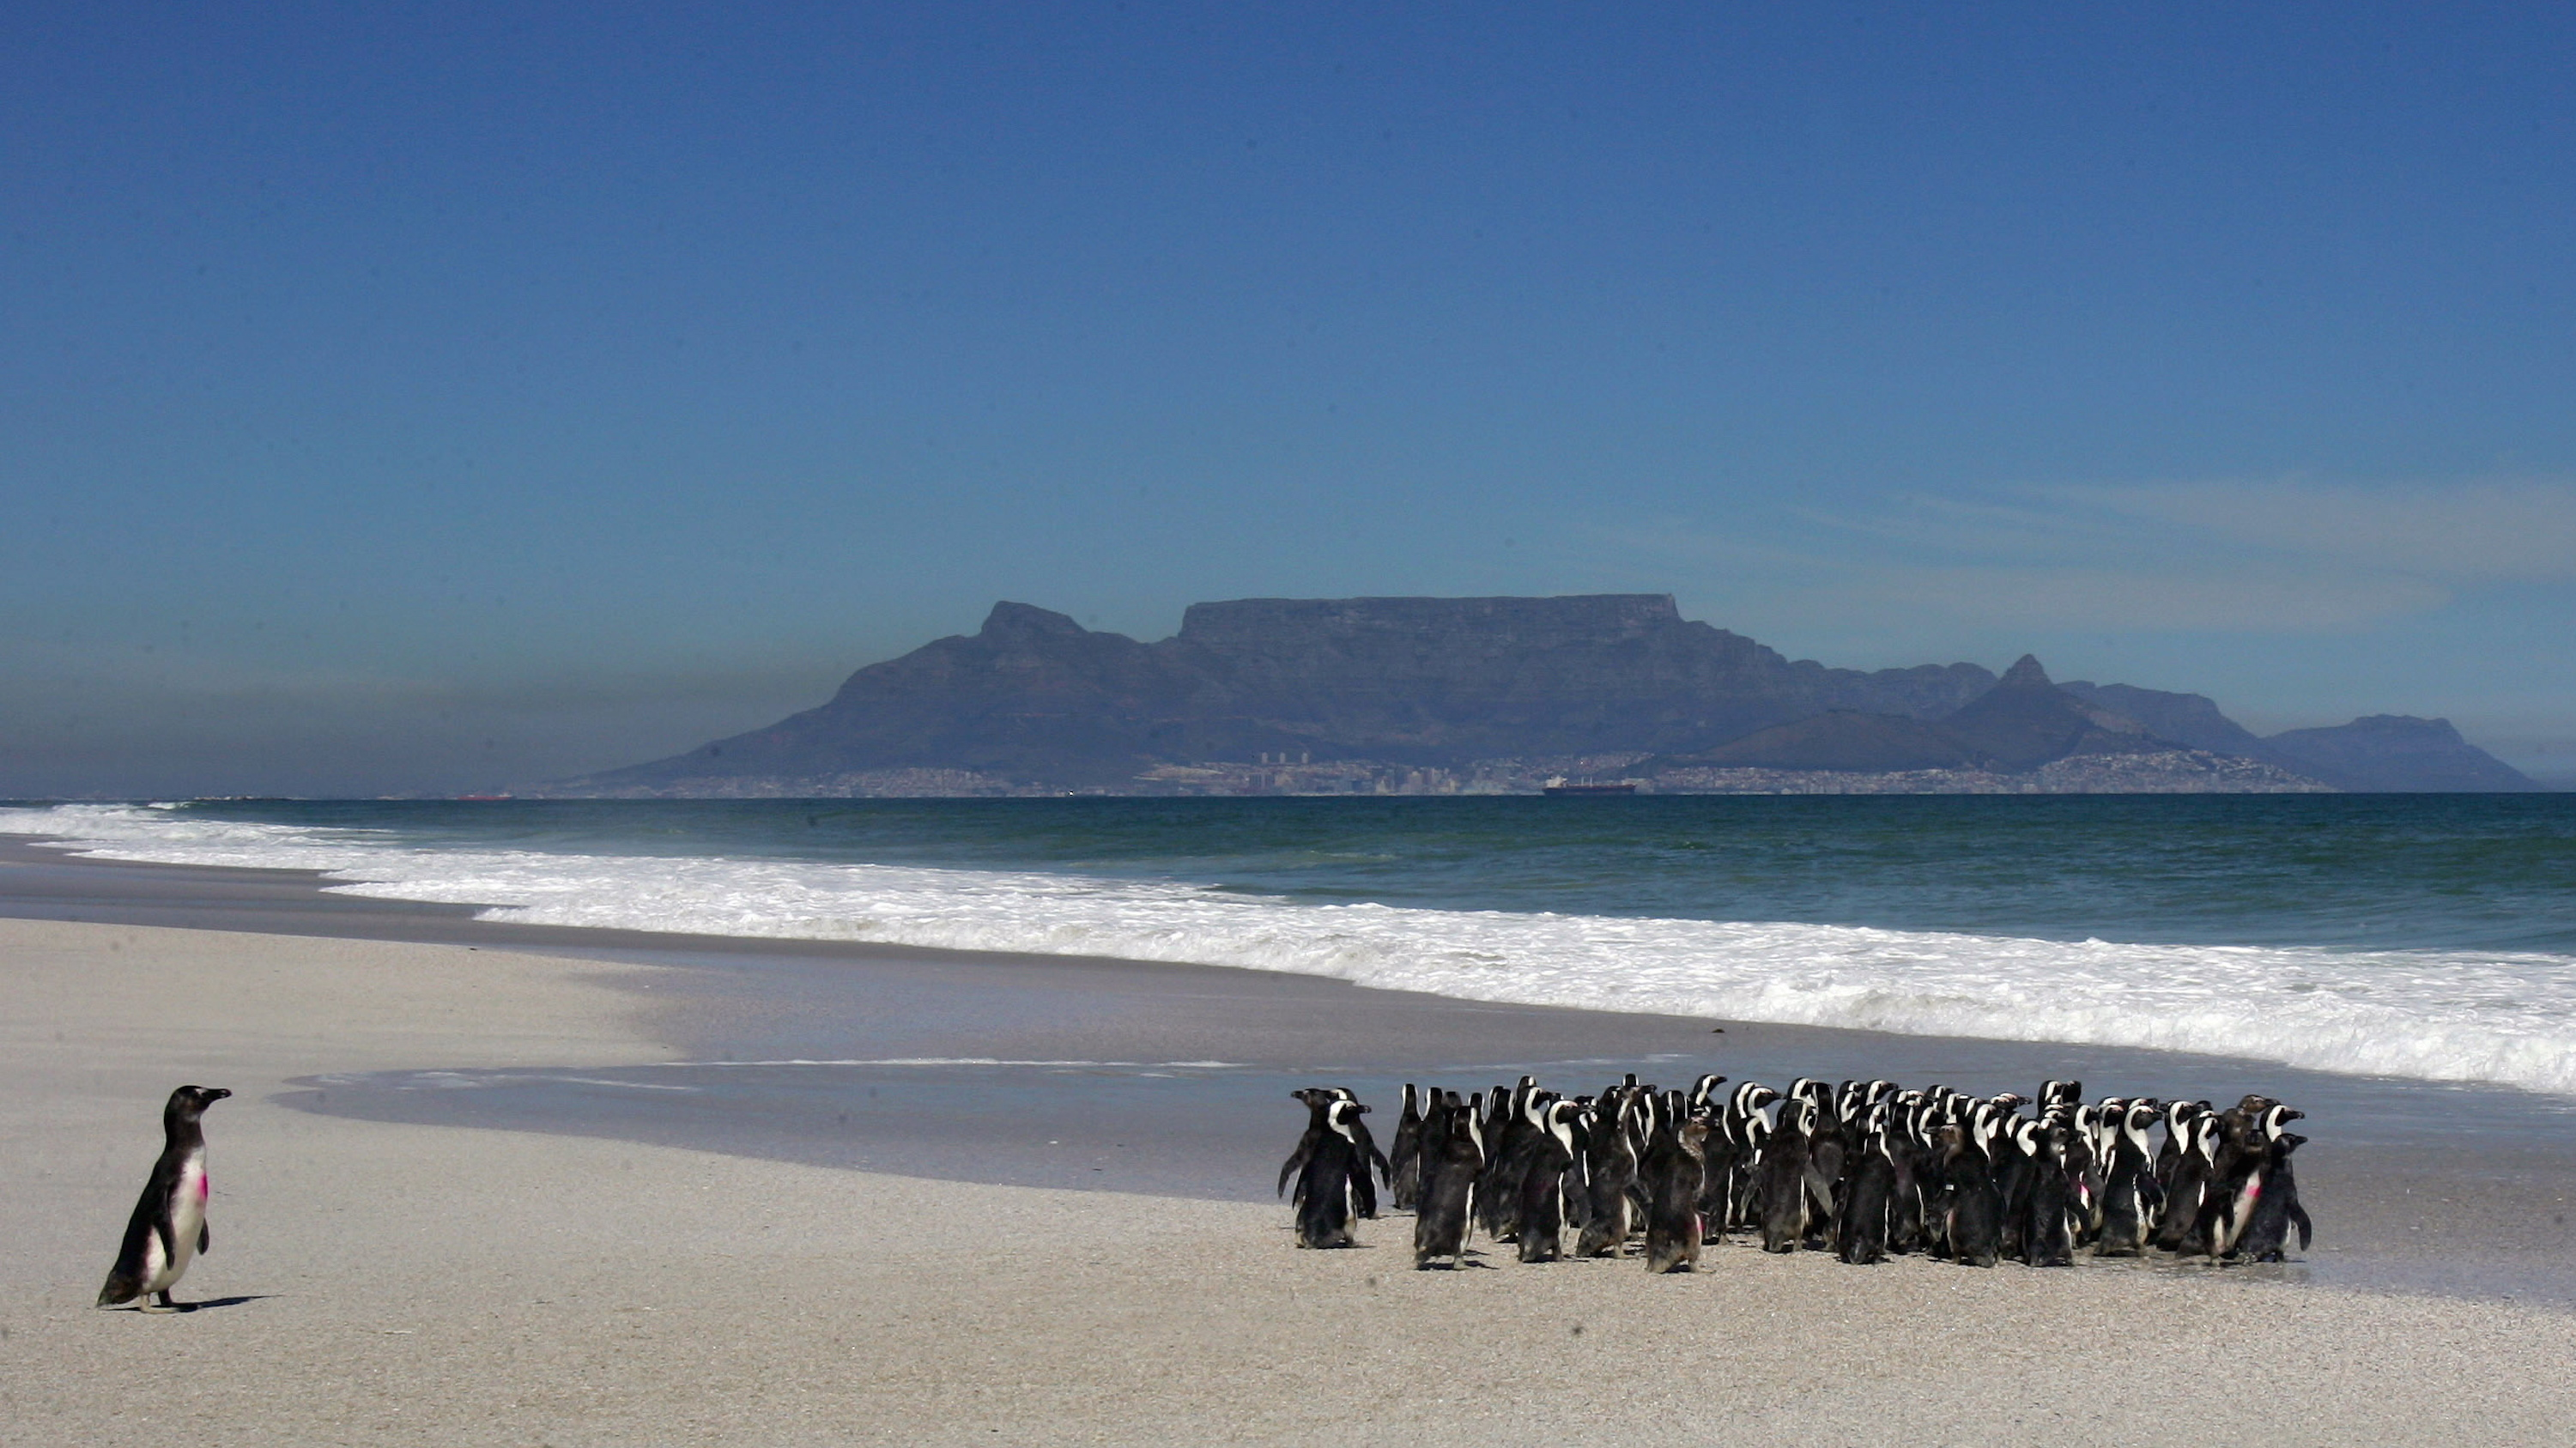 A group of about 100 African penguins are released into the sea near Cape Town September 16, 2005 after recovering at the SANCCOB (South African Foundation for the Conservation of Coastal Birds) rehabilitation centre. About 400 of these endangered birds were treated by volunteers at the centre after being affected by an oil slick. Conservation officials suspect the oil spill may have been the result of vessels illegally flushing bilges off the South African coast.